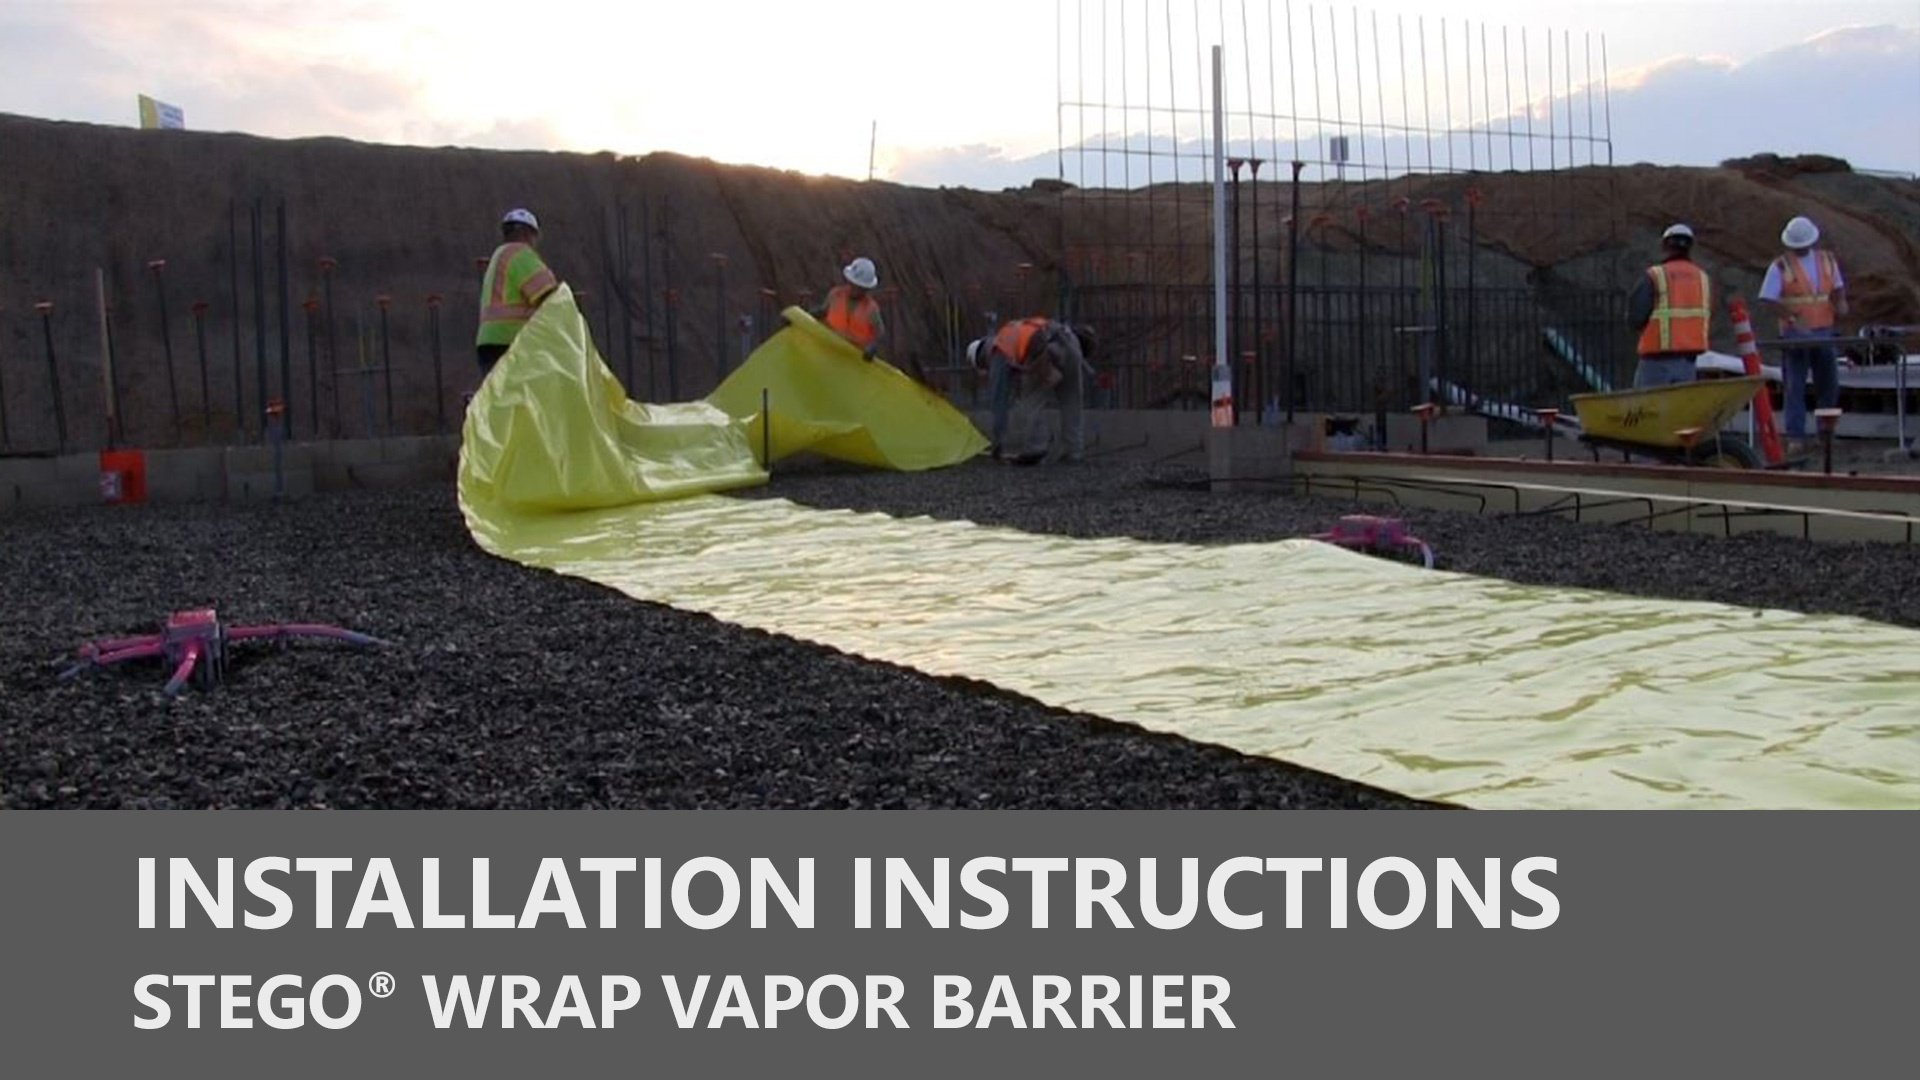 Stego Wrap Installation Instructions